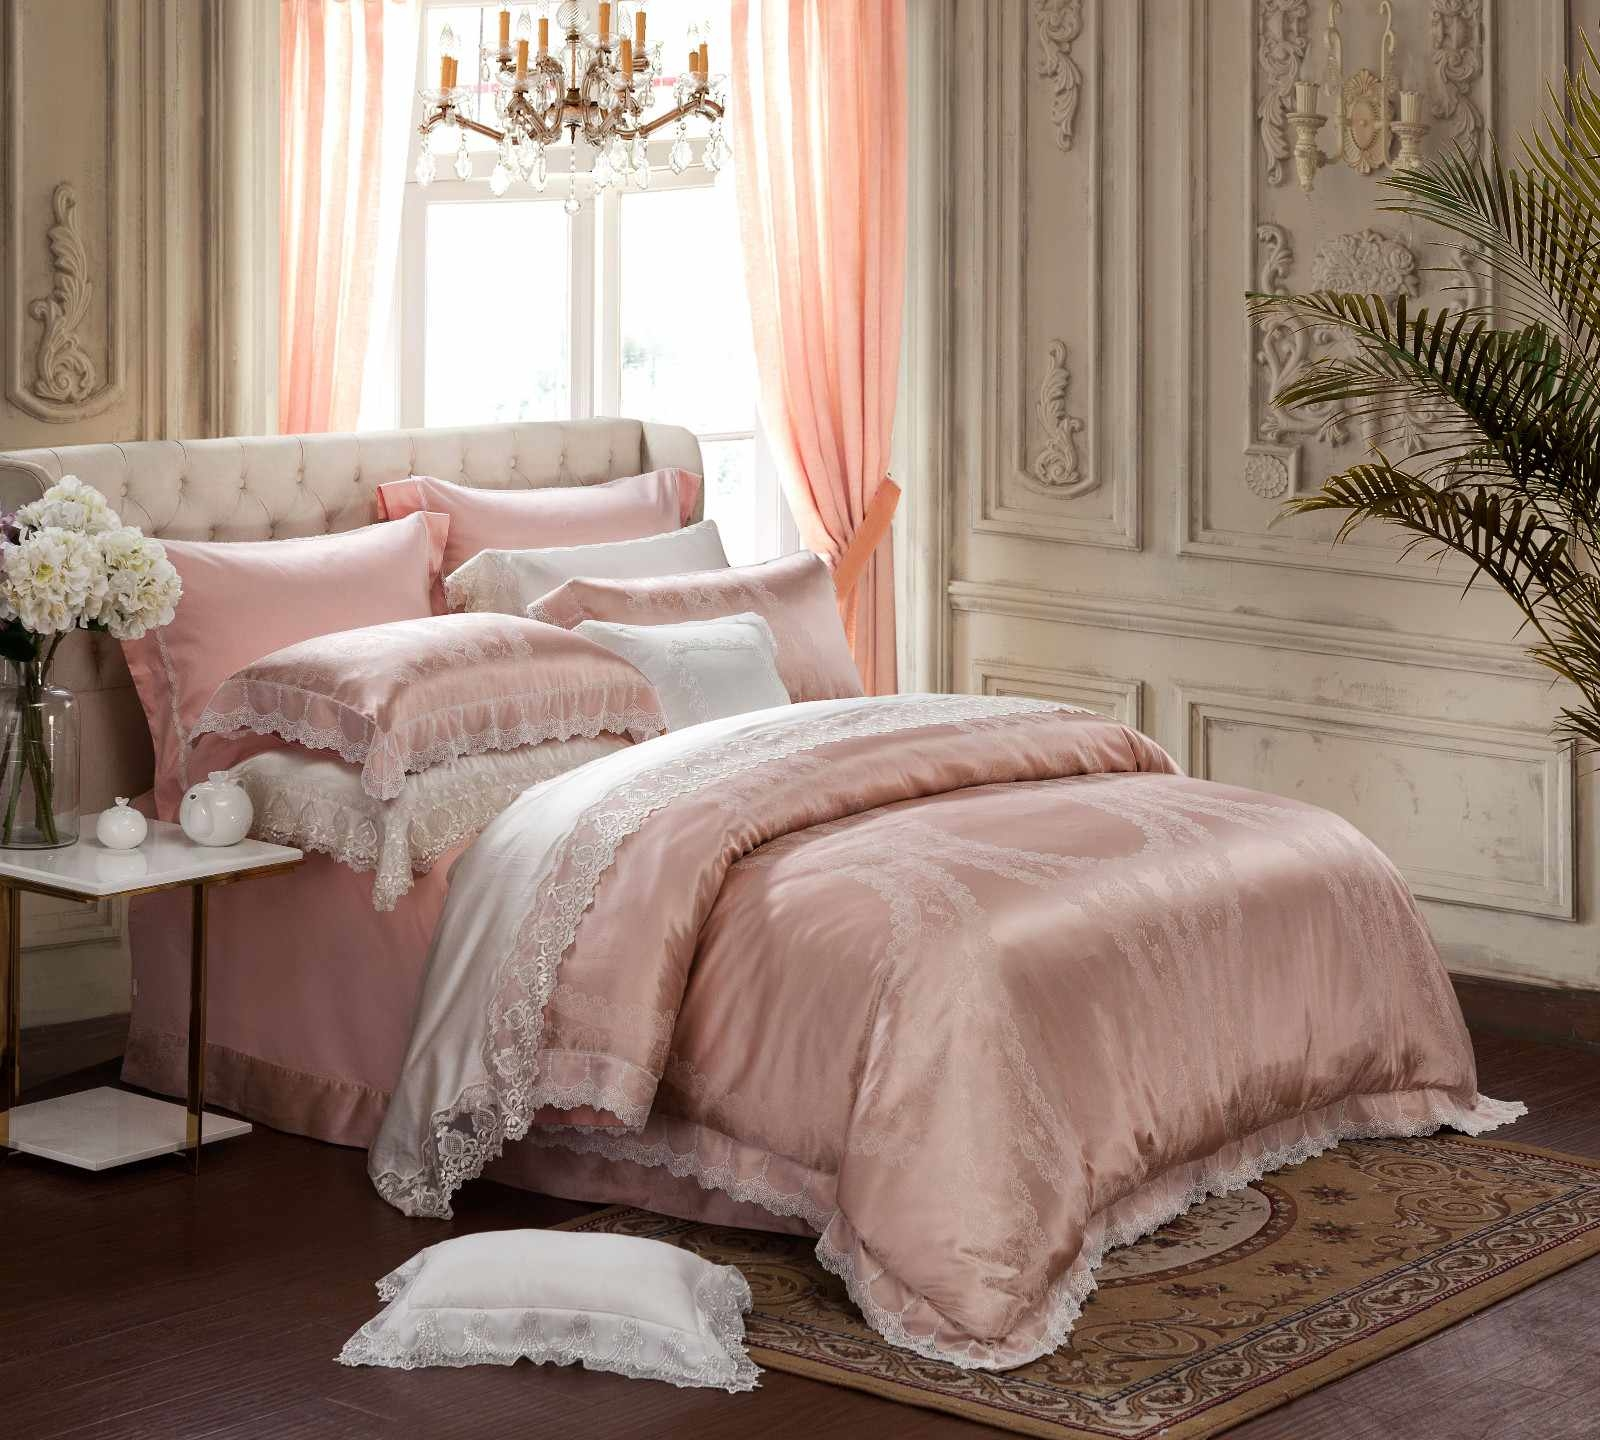 Daphne Brand linen designs Jacquard Bedding Set bedroom cotton